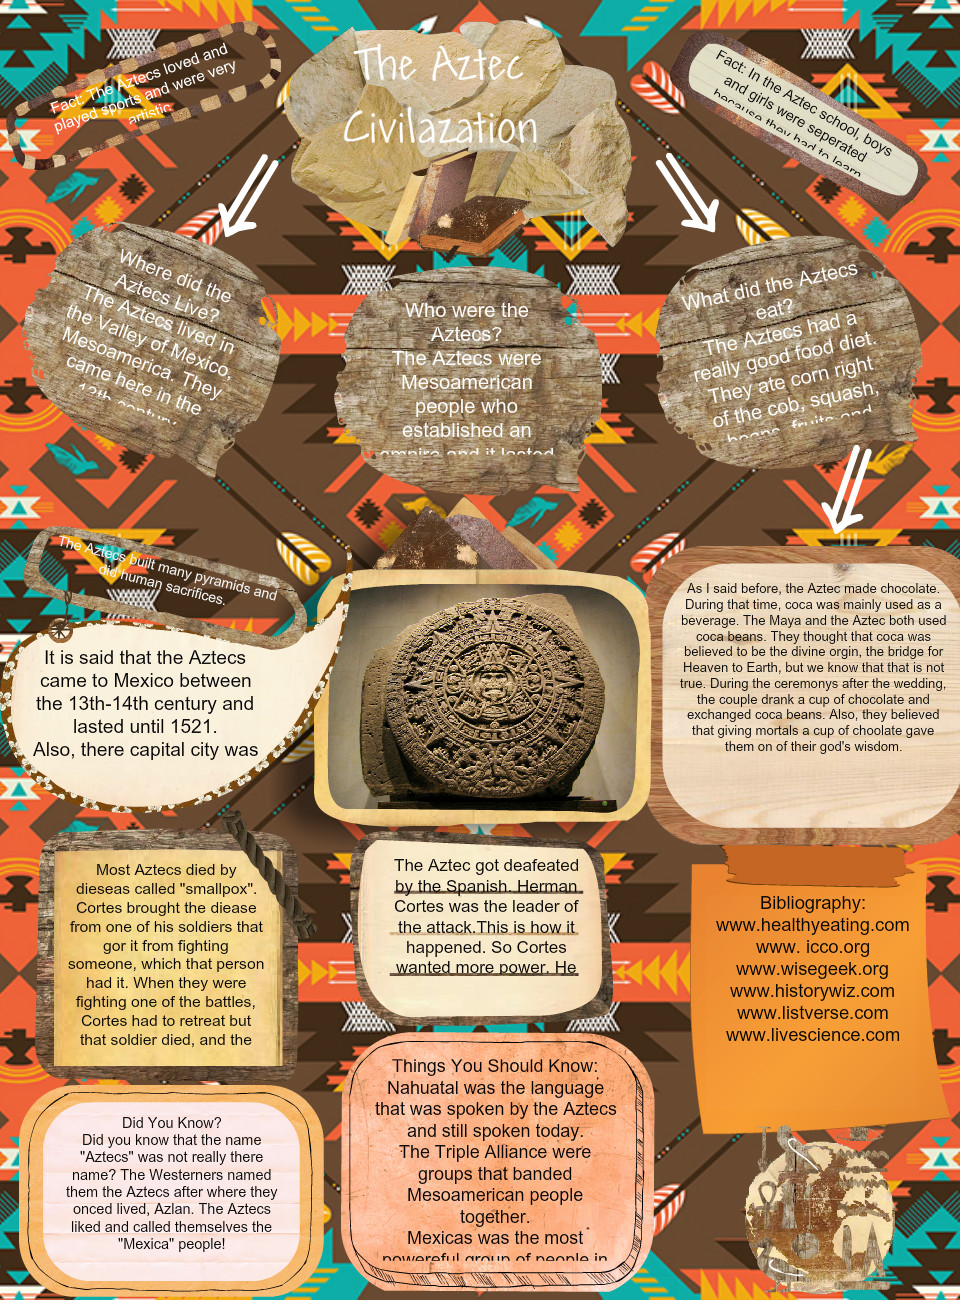 the aztecs what should history say This guide will show to you how fun and amazing a trip to the aztec civilization can be, so if you ever want to visit the aztec civilization this paper should be your travel guide i have lived almost all my life learning about the aztecs and working for the history channel 13.